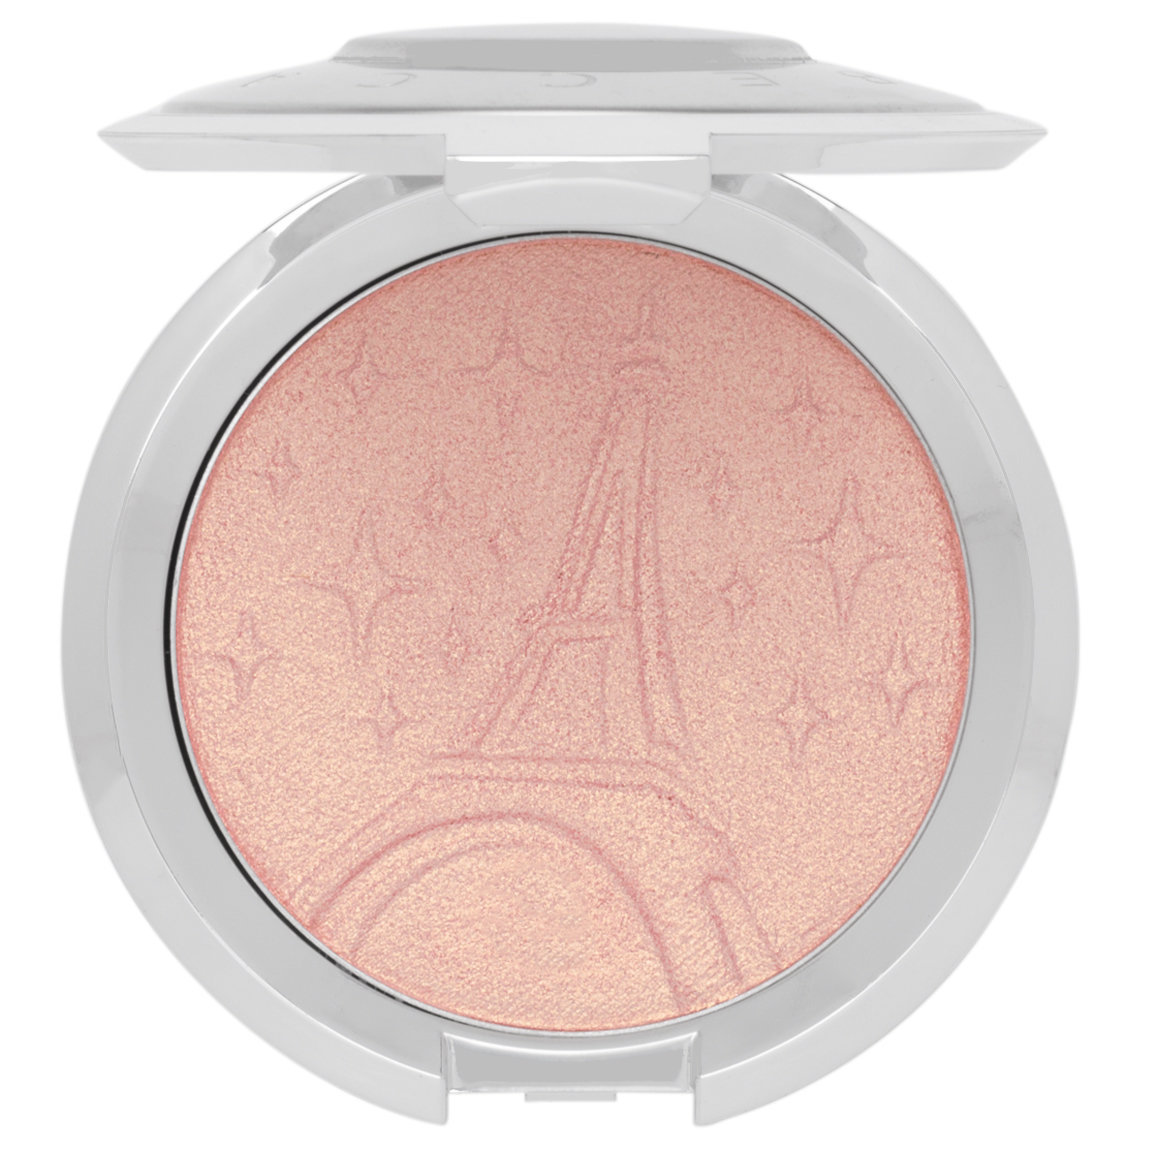 BECCA Shimmering Skin Perfector Pressed Parisian Lights product smear.